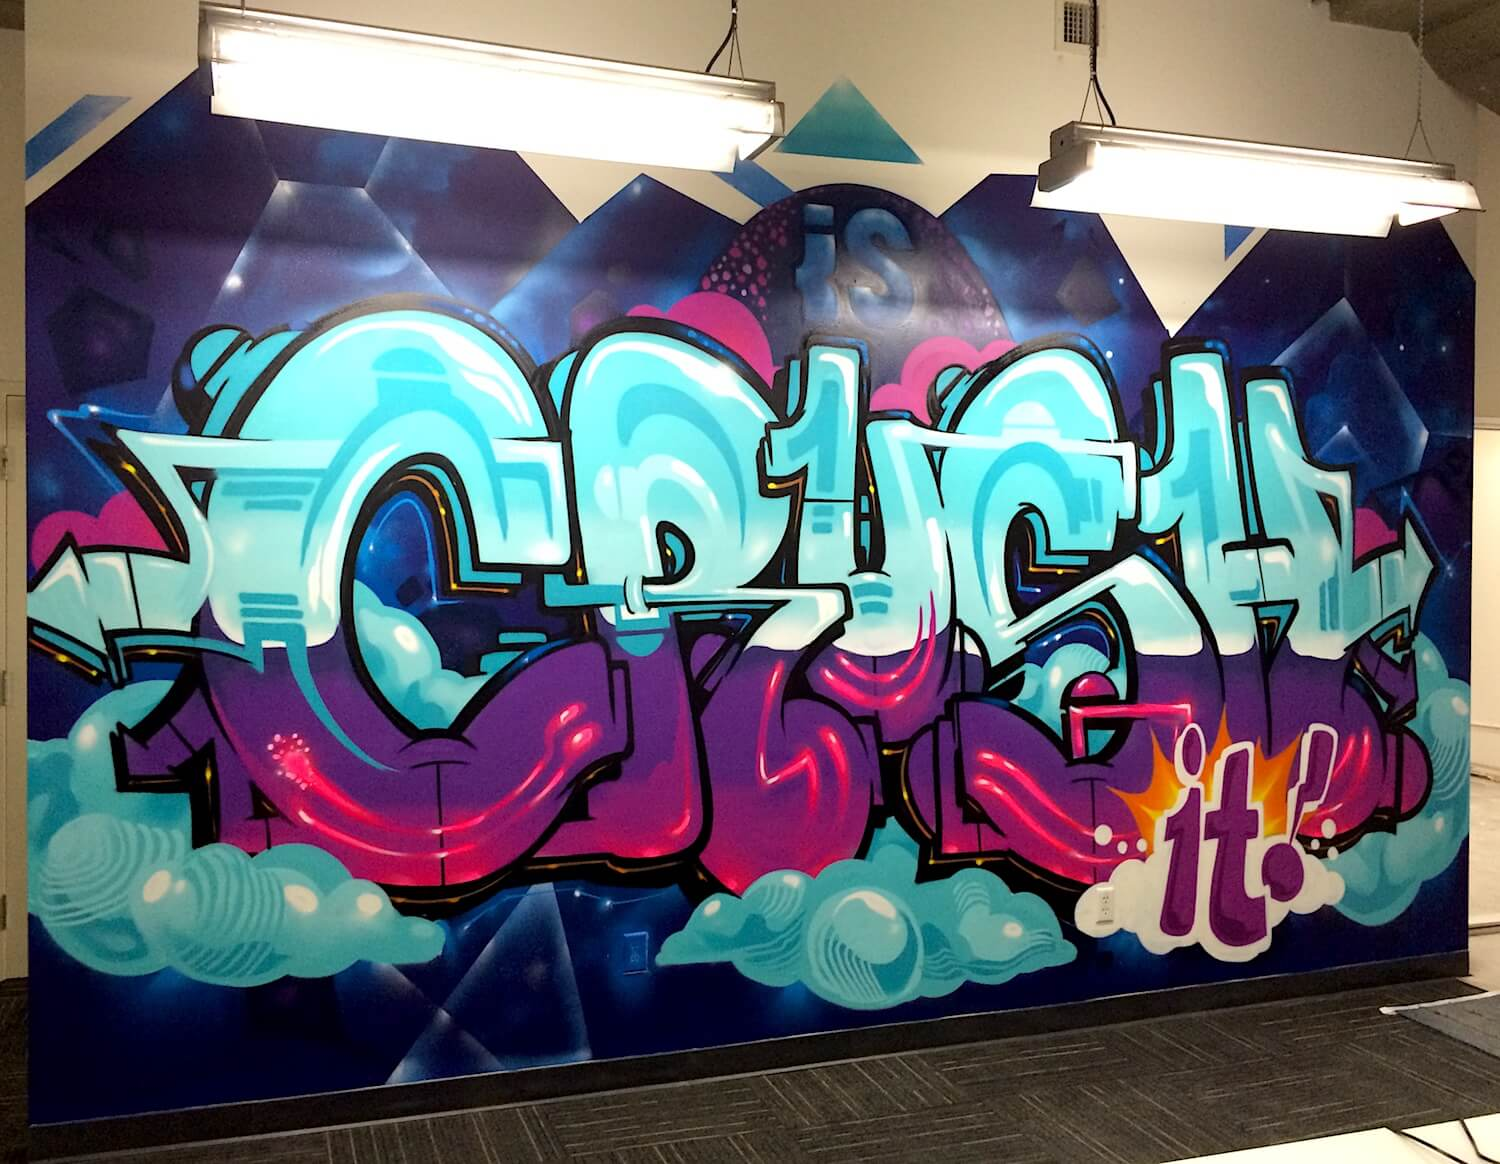 Commissioned Graffiti Mural for IronSource | San Francisco USA, 2016